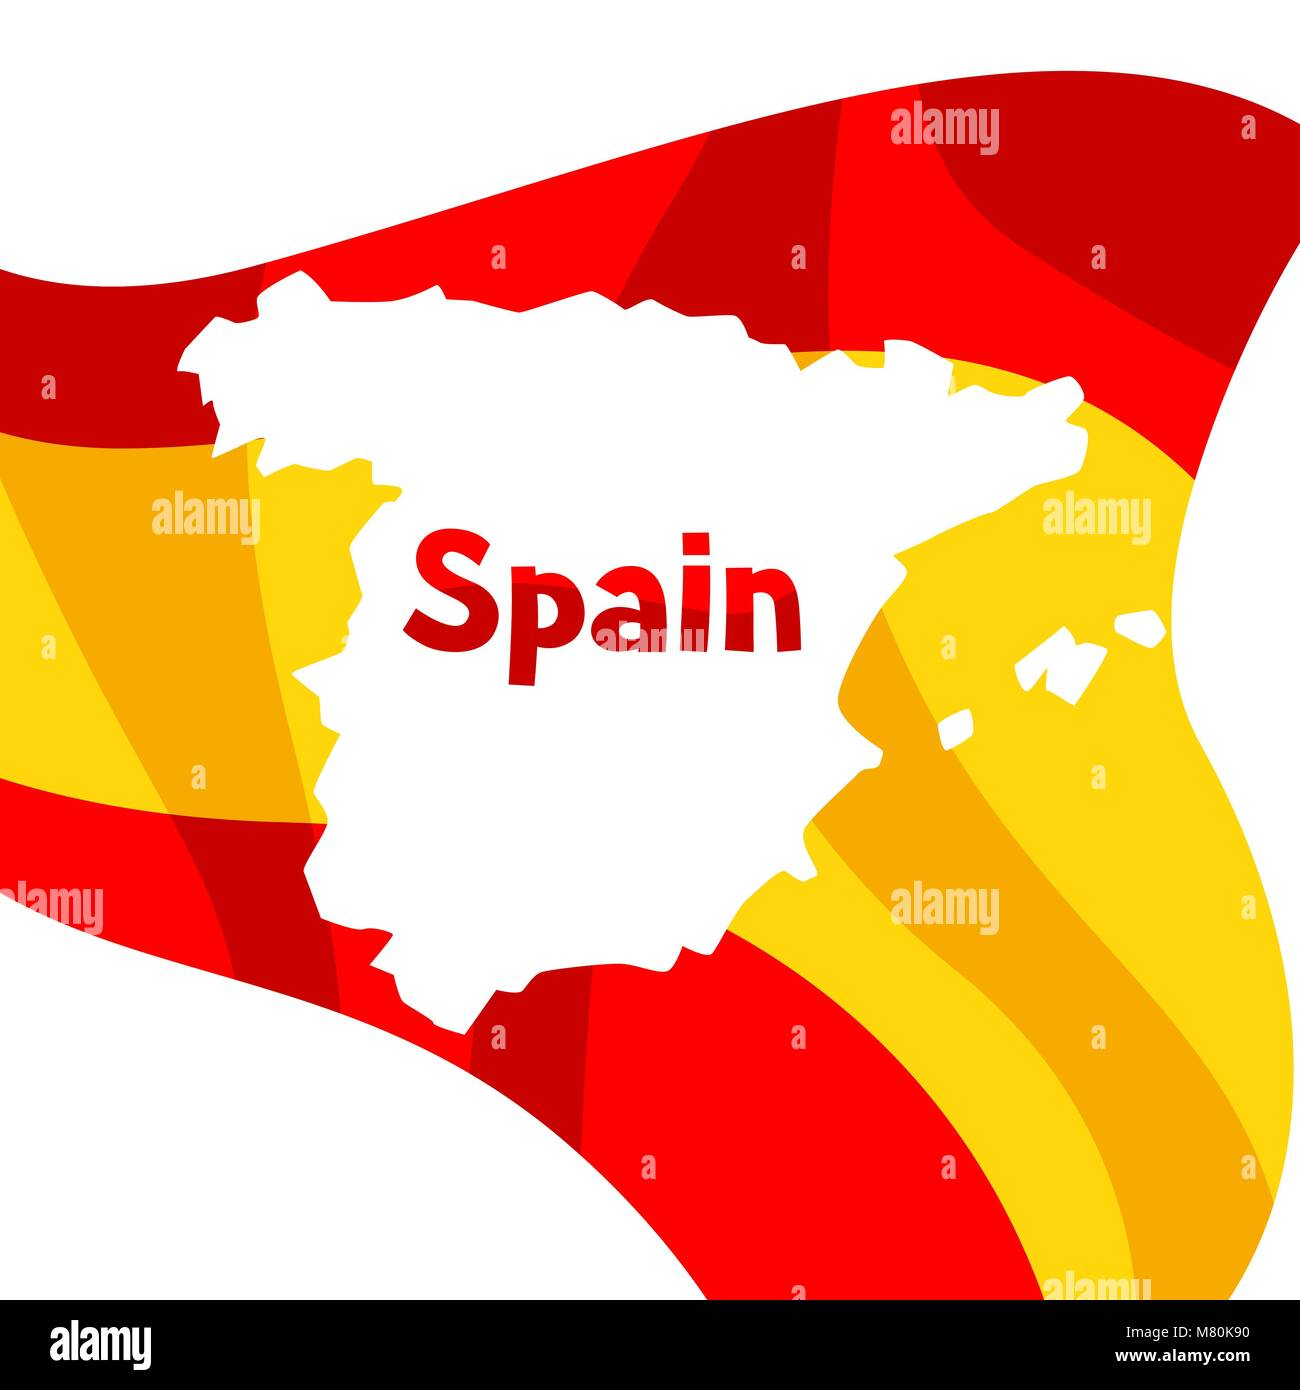 Background with flag and map of Spain. Spanish traditional symbols and objects Stock Vector